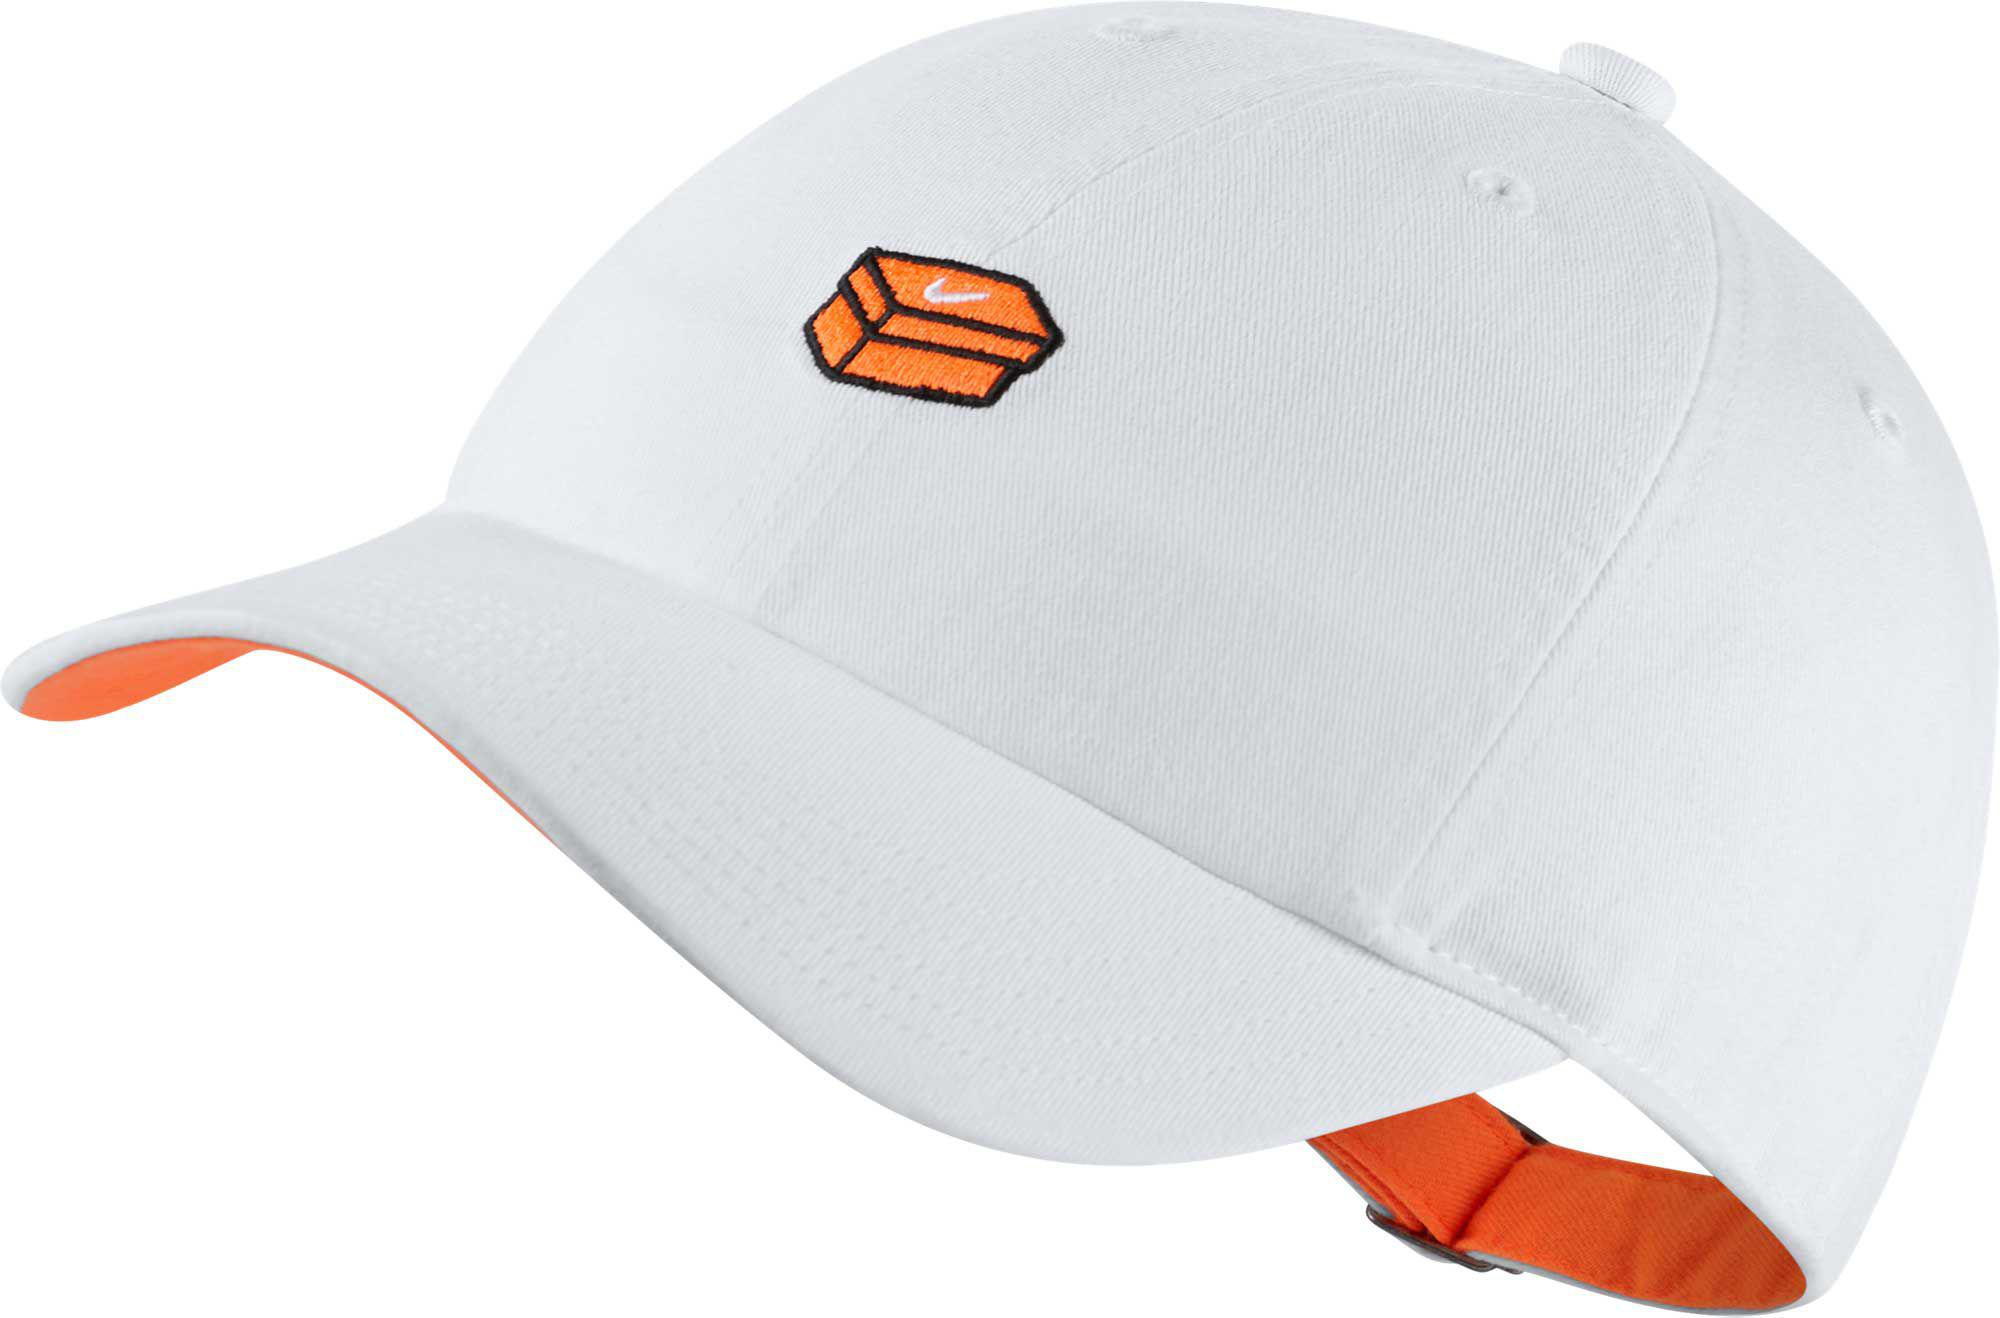 a90094eb53e Lyst - Nike Oys  Heritage86 Shoebox Adjustable Hat in White for Men